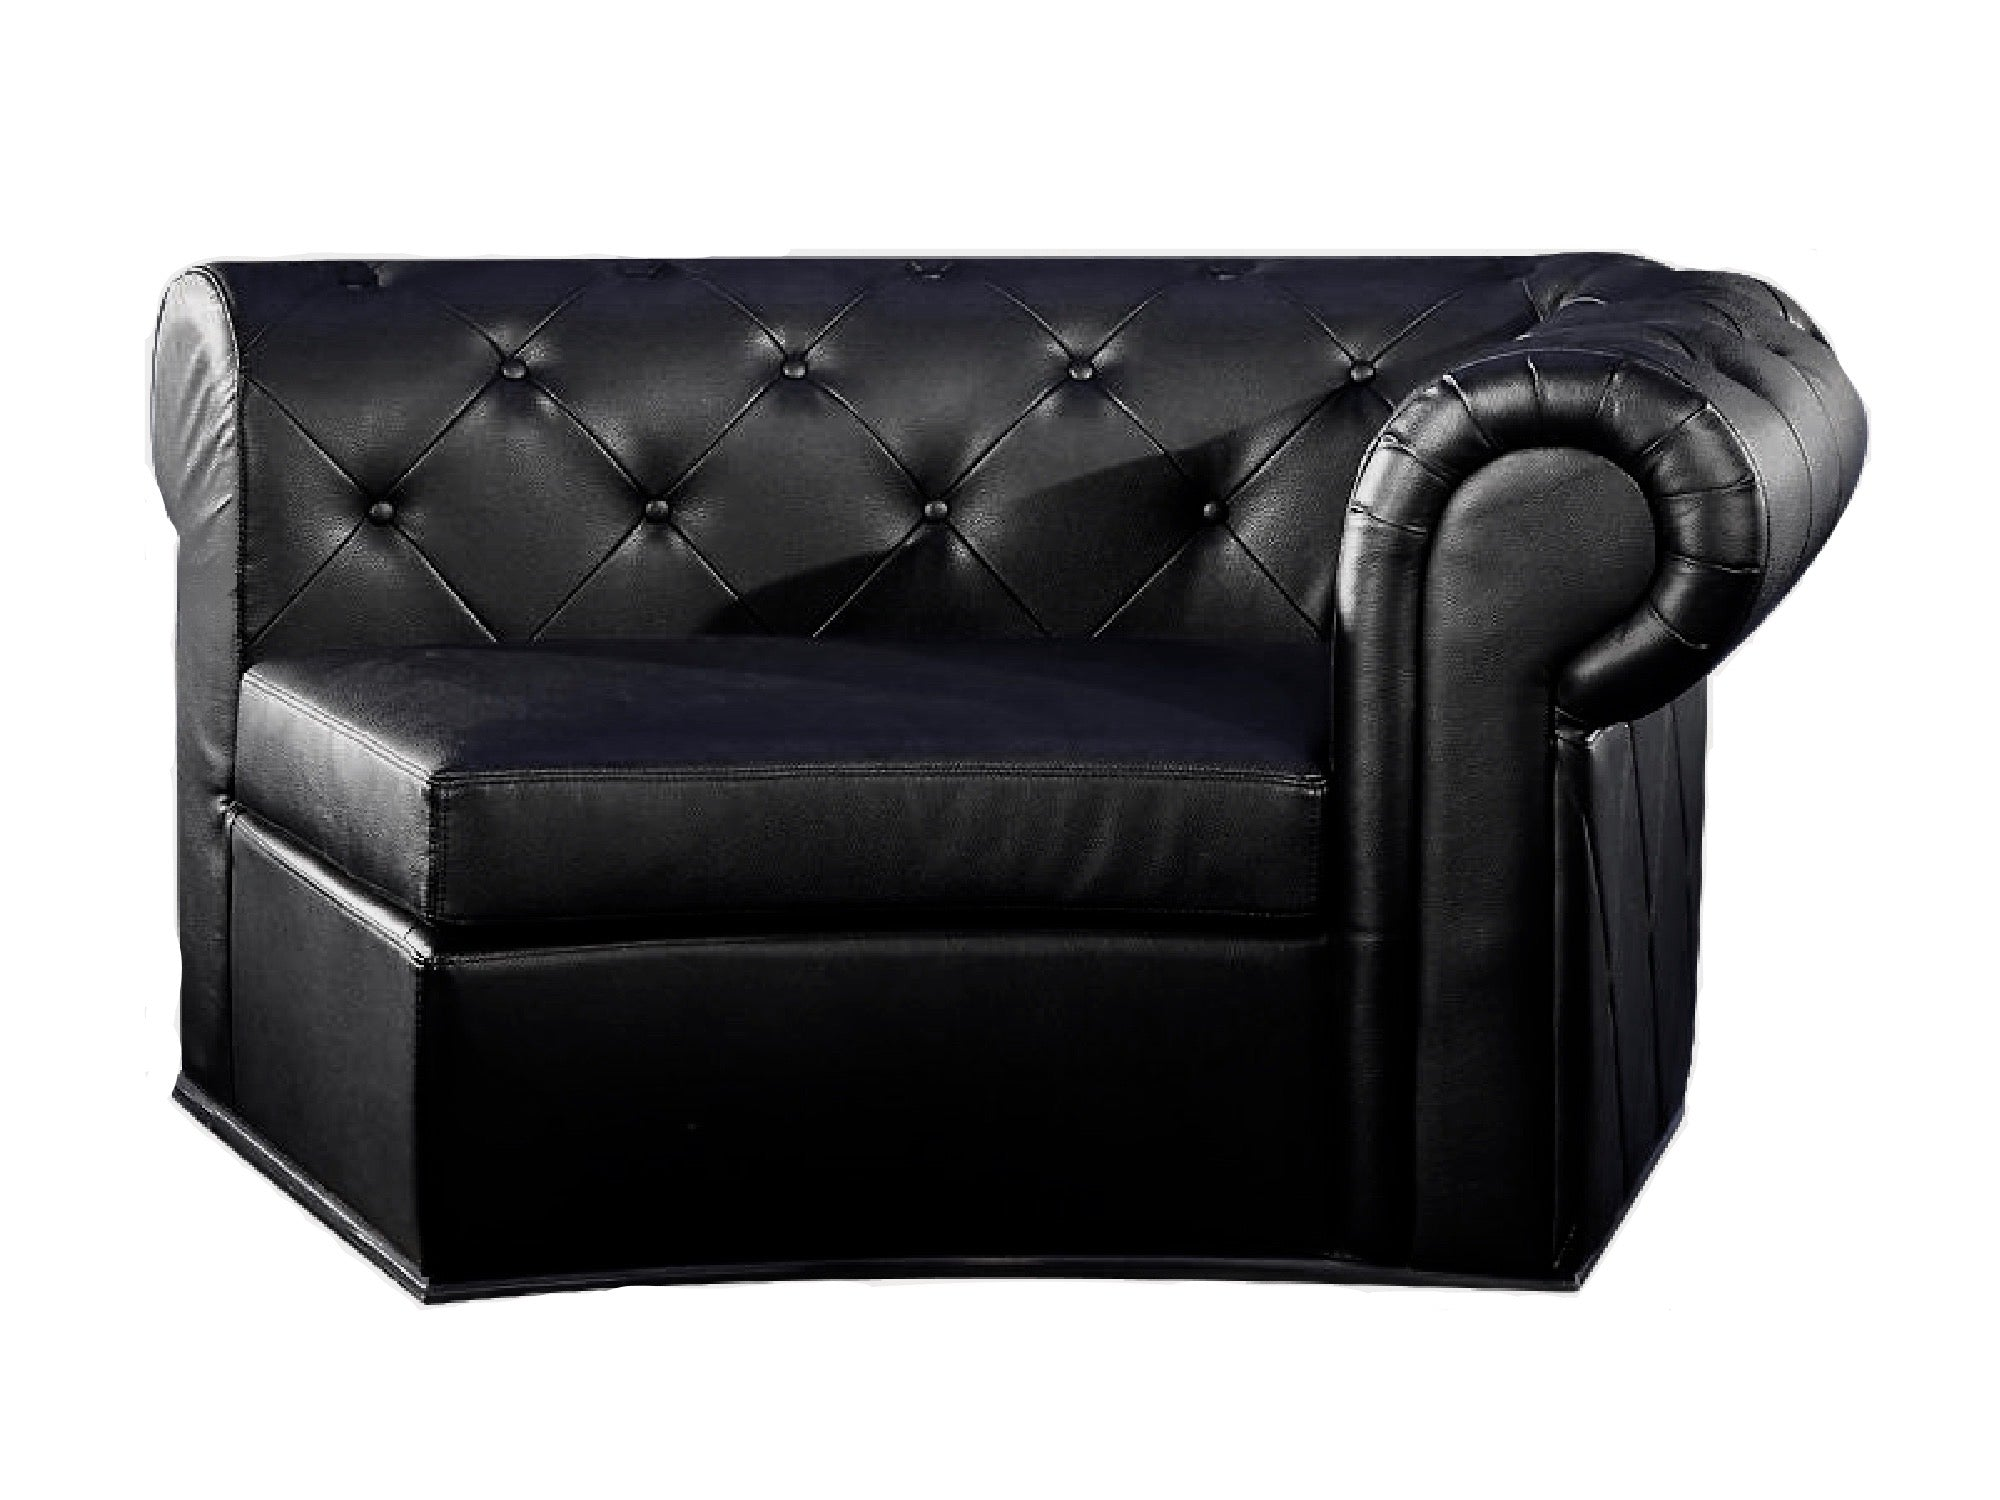 MIDNIGHT RIGHT ARM SOFA SECTION